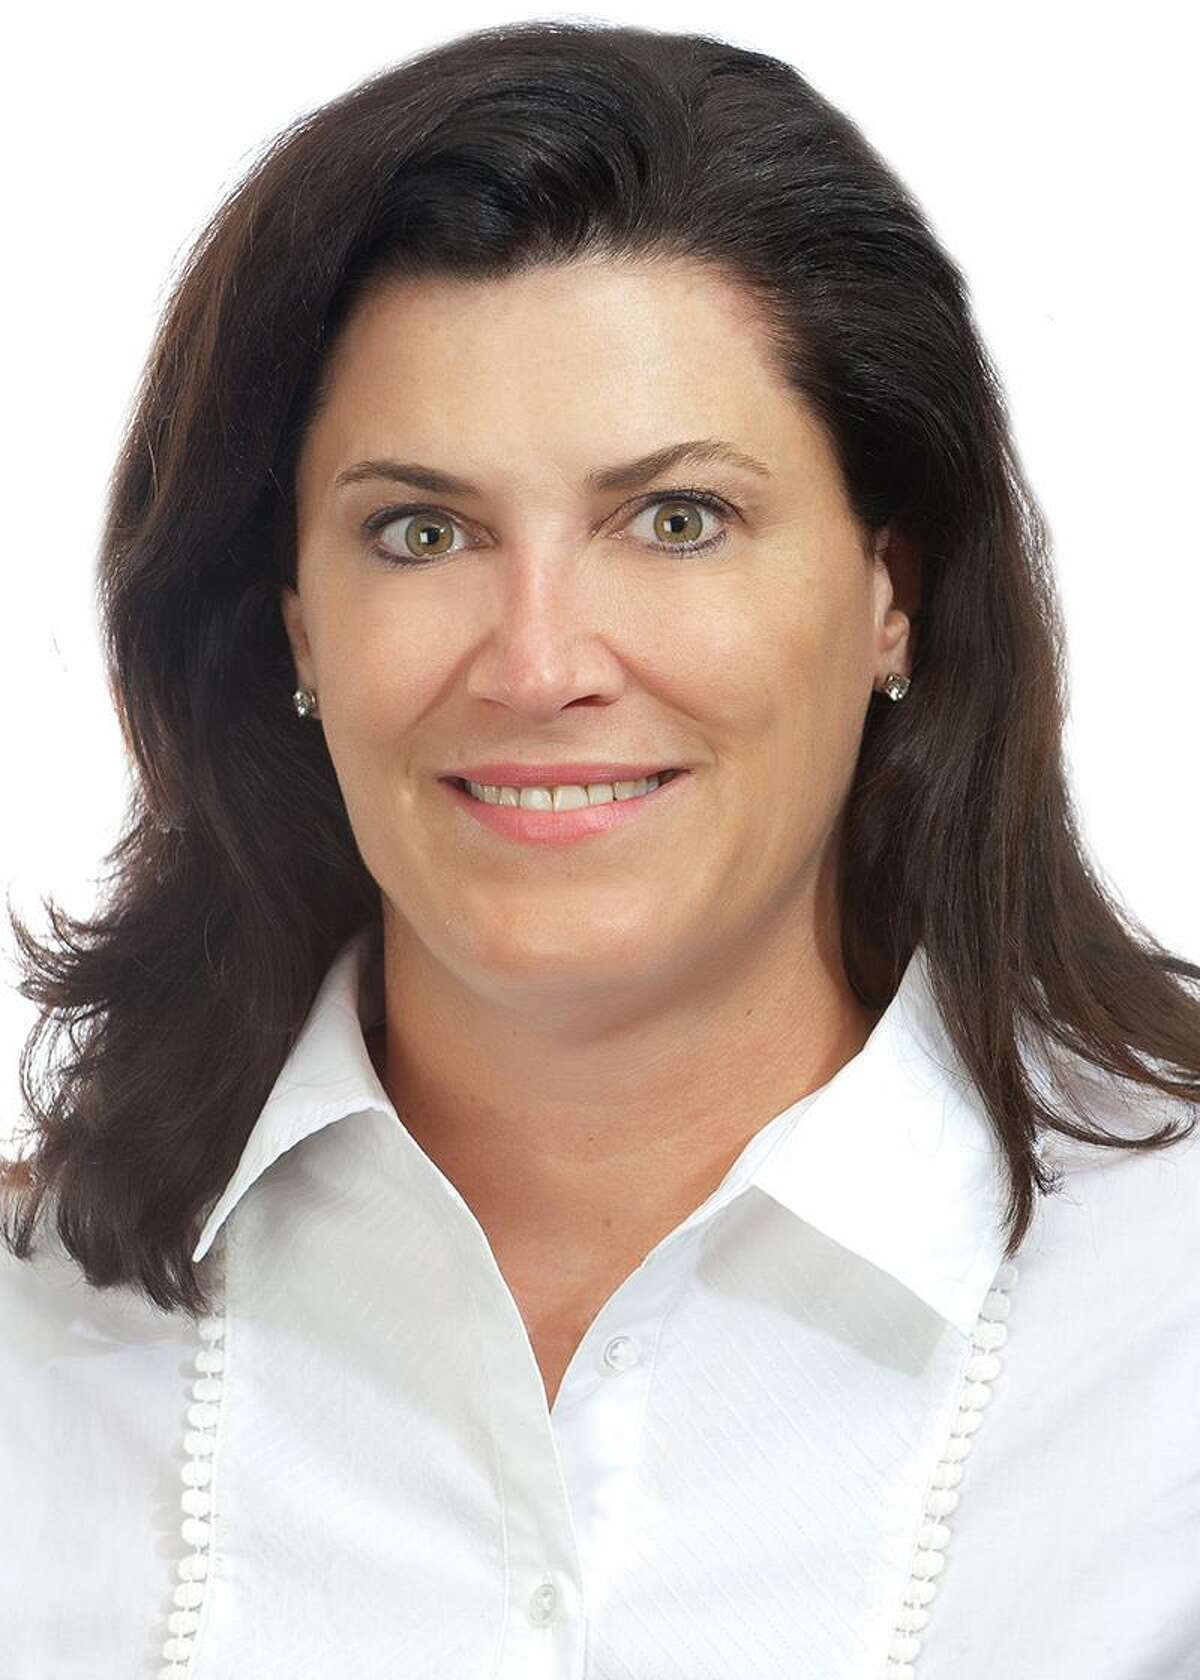 Elizabeth Bunk has been promoted to partner-in-charge of private client services for the south Texas region at Weaver.